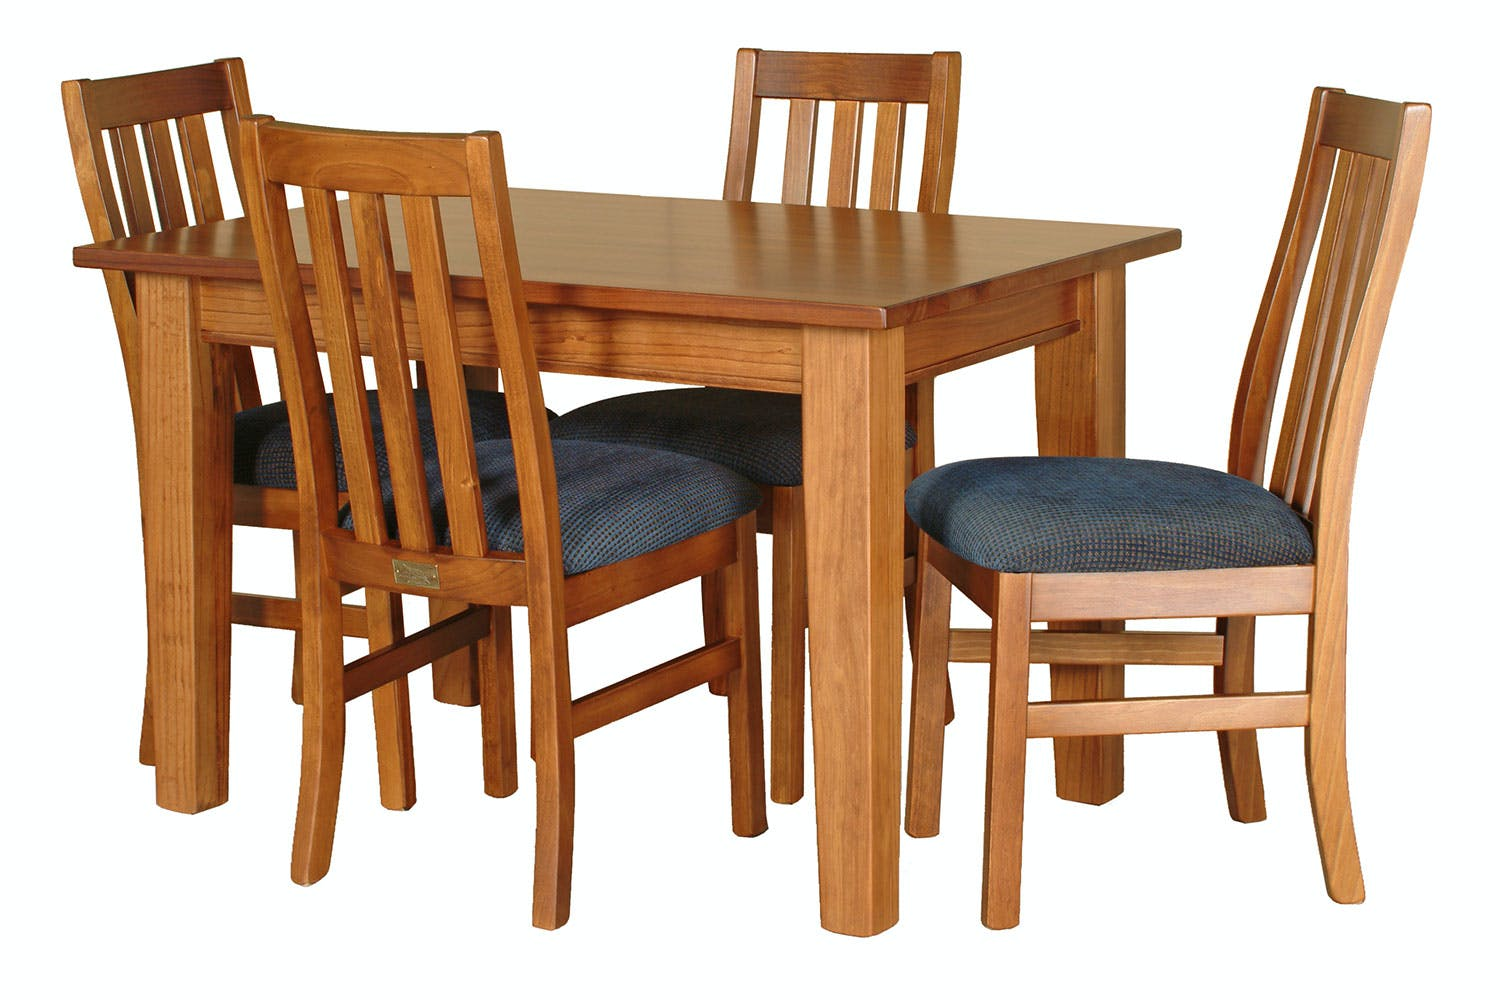 Ferngrove Dining Table 9x9 by Coastwood Furniture   Harvey ...